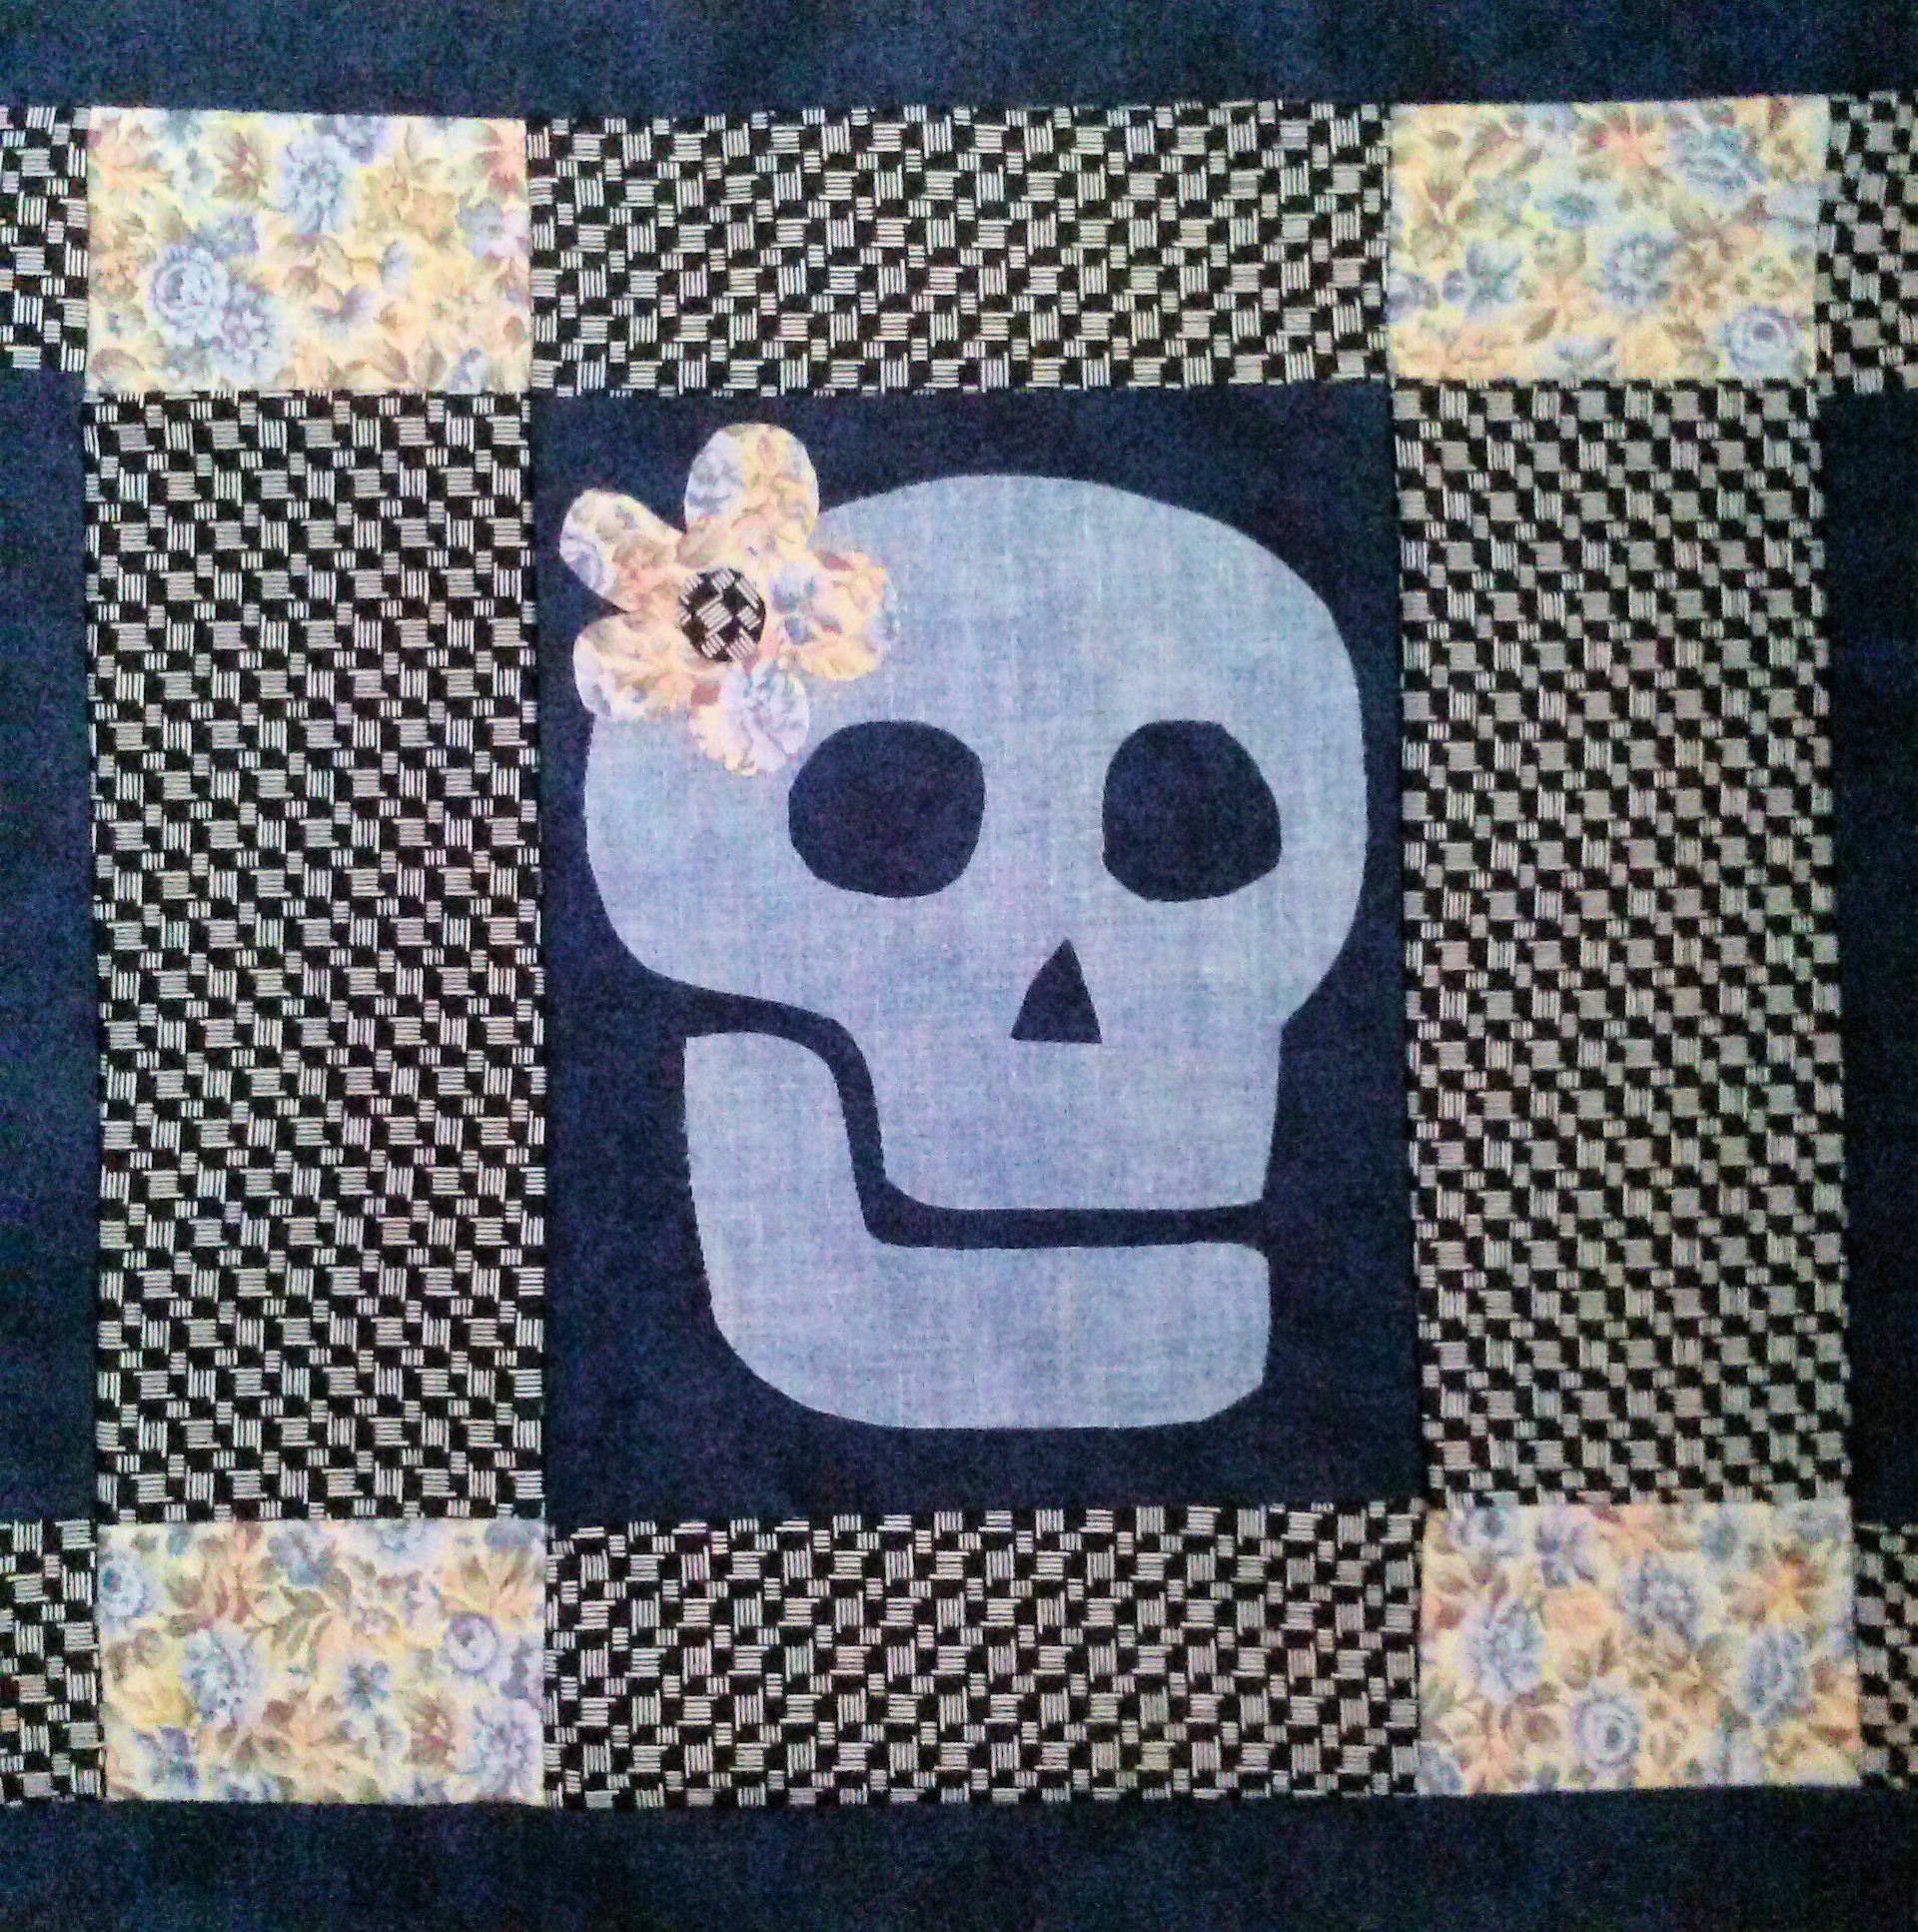 Skull & Flower Applique Quilt Block